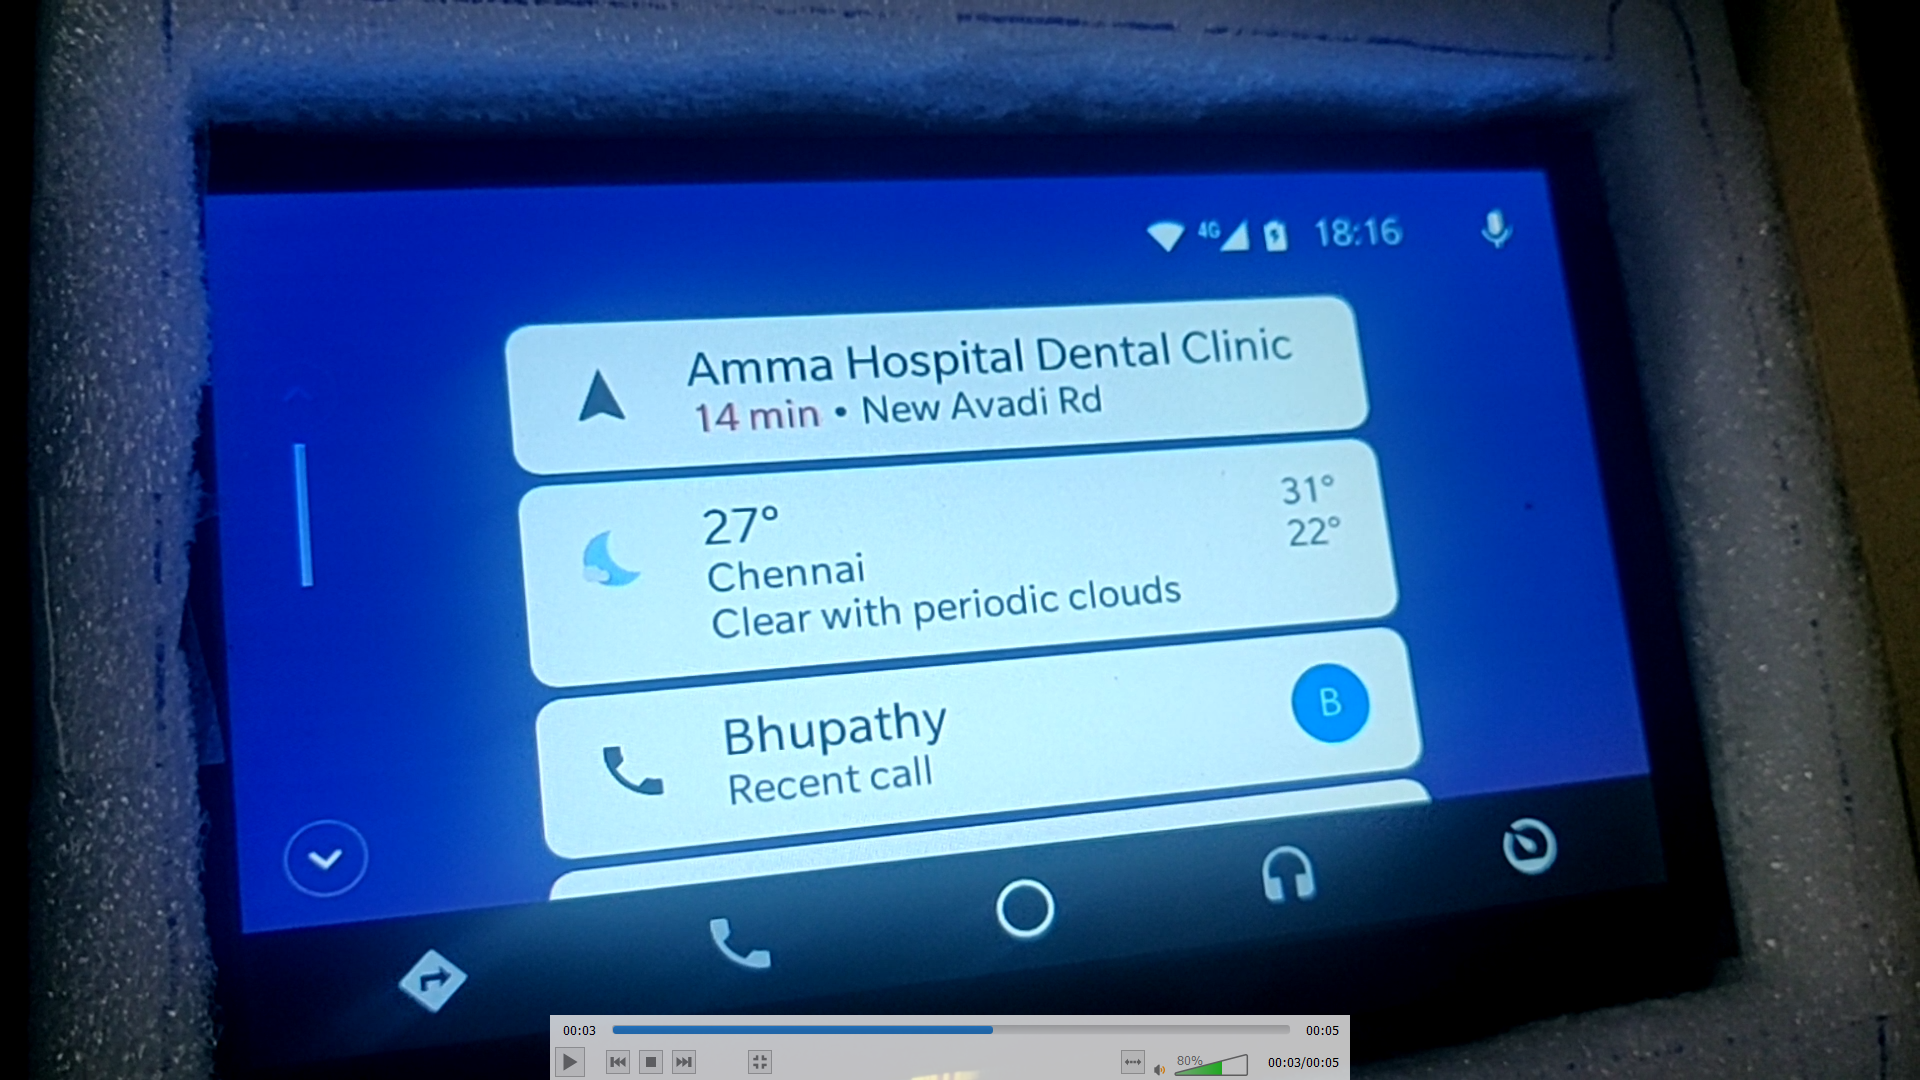 Android Auto closing automatically after some seconds